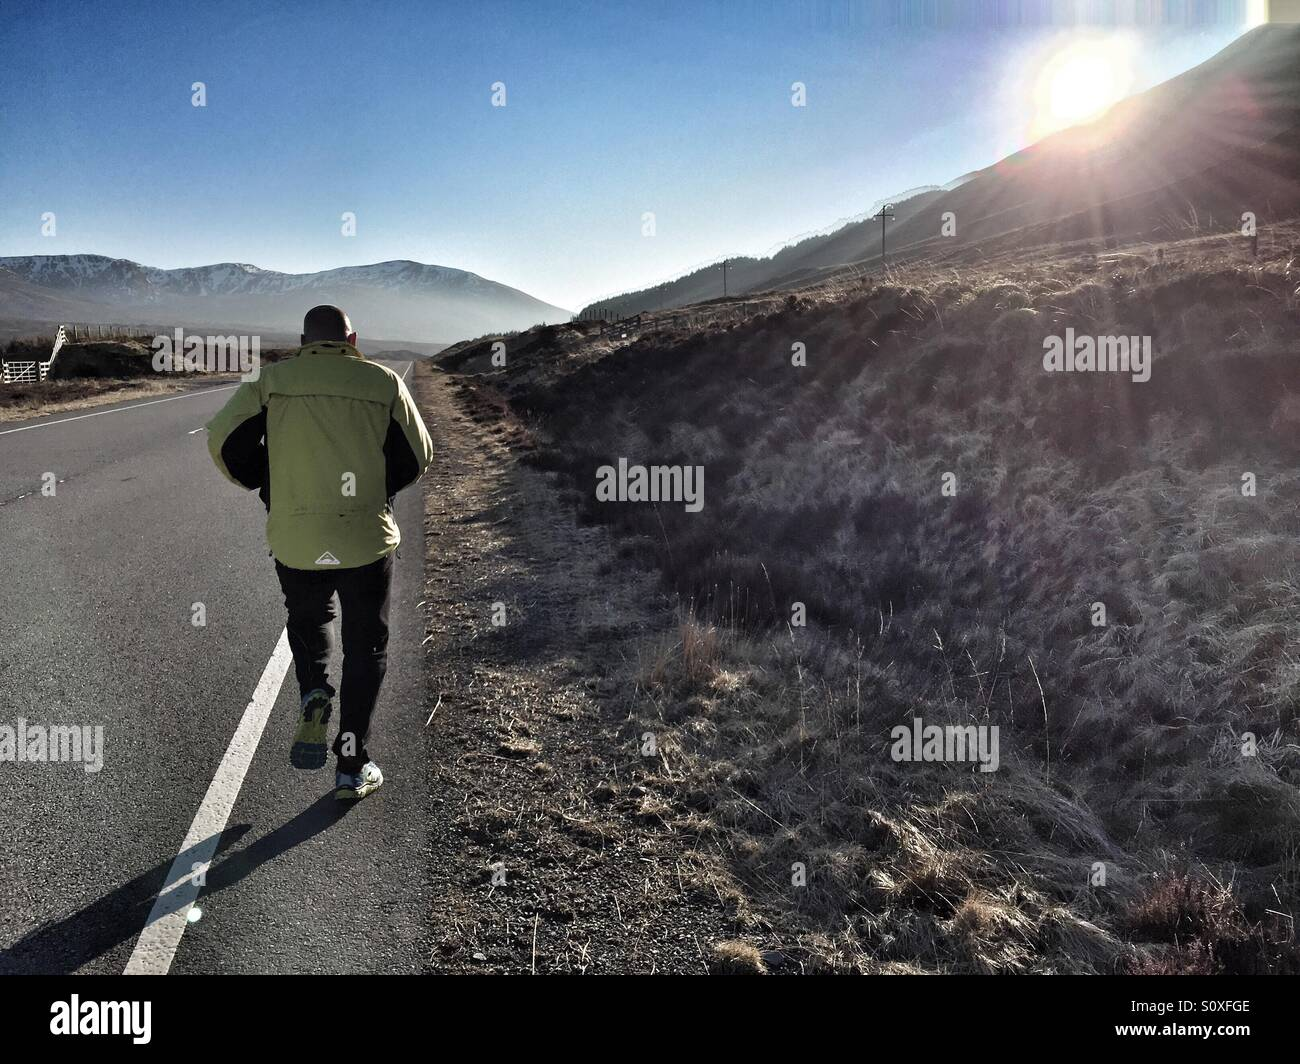 The freedom of the open road. 40 year old man running on a mountain road - Stock Image